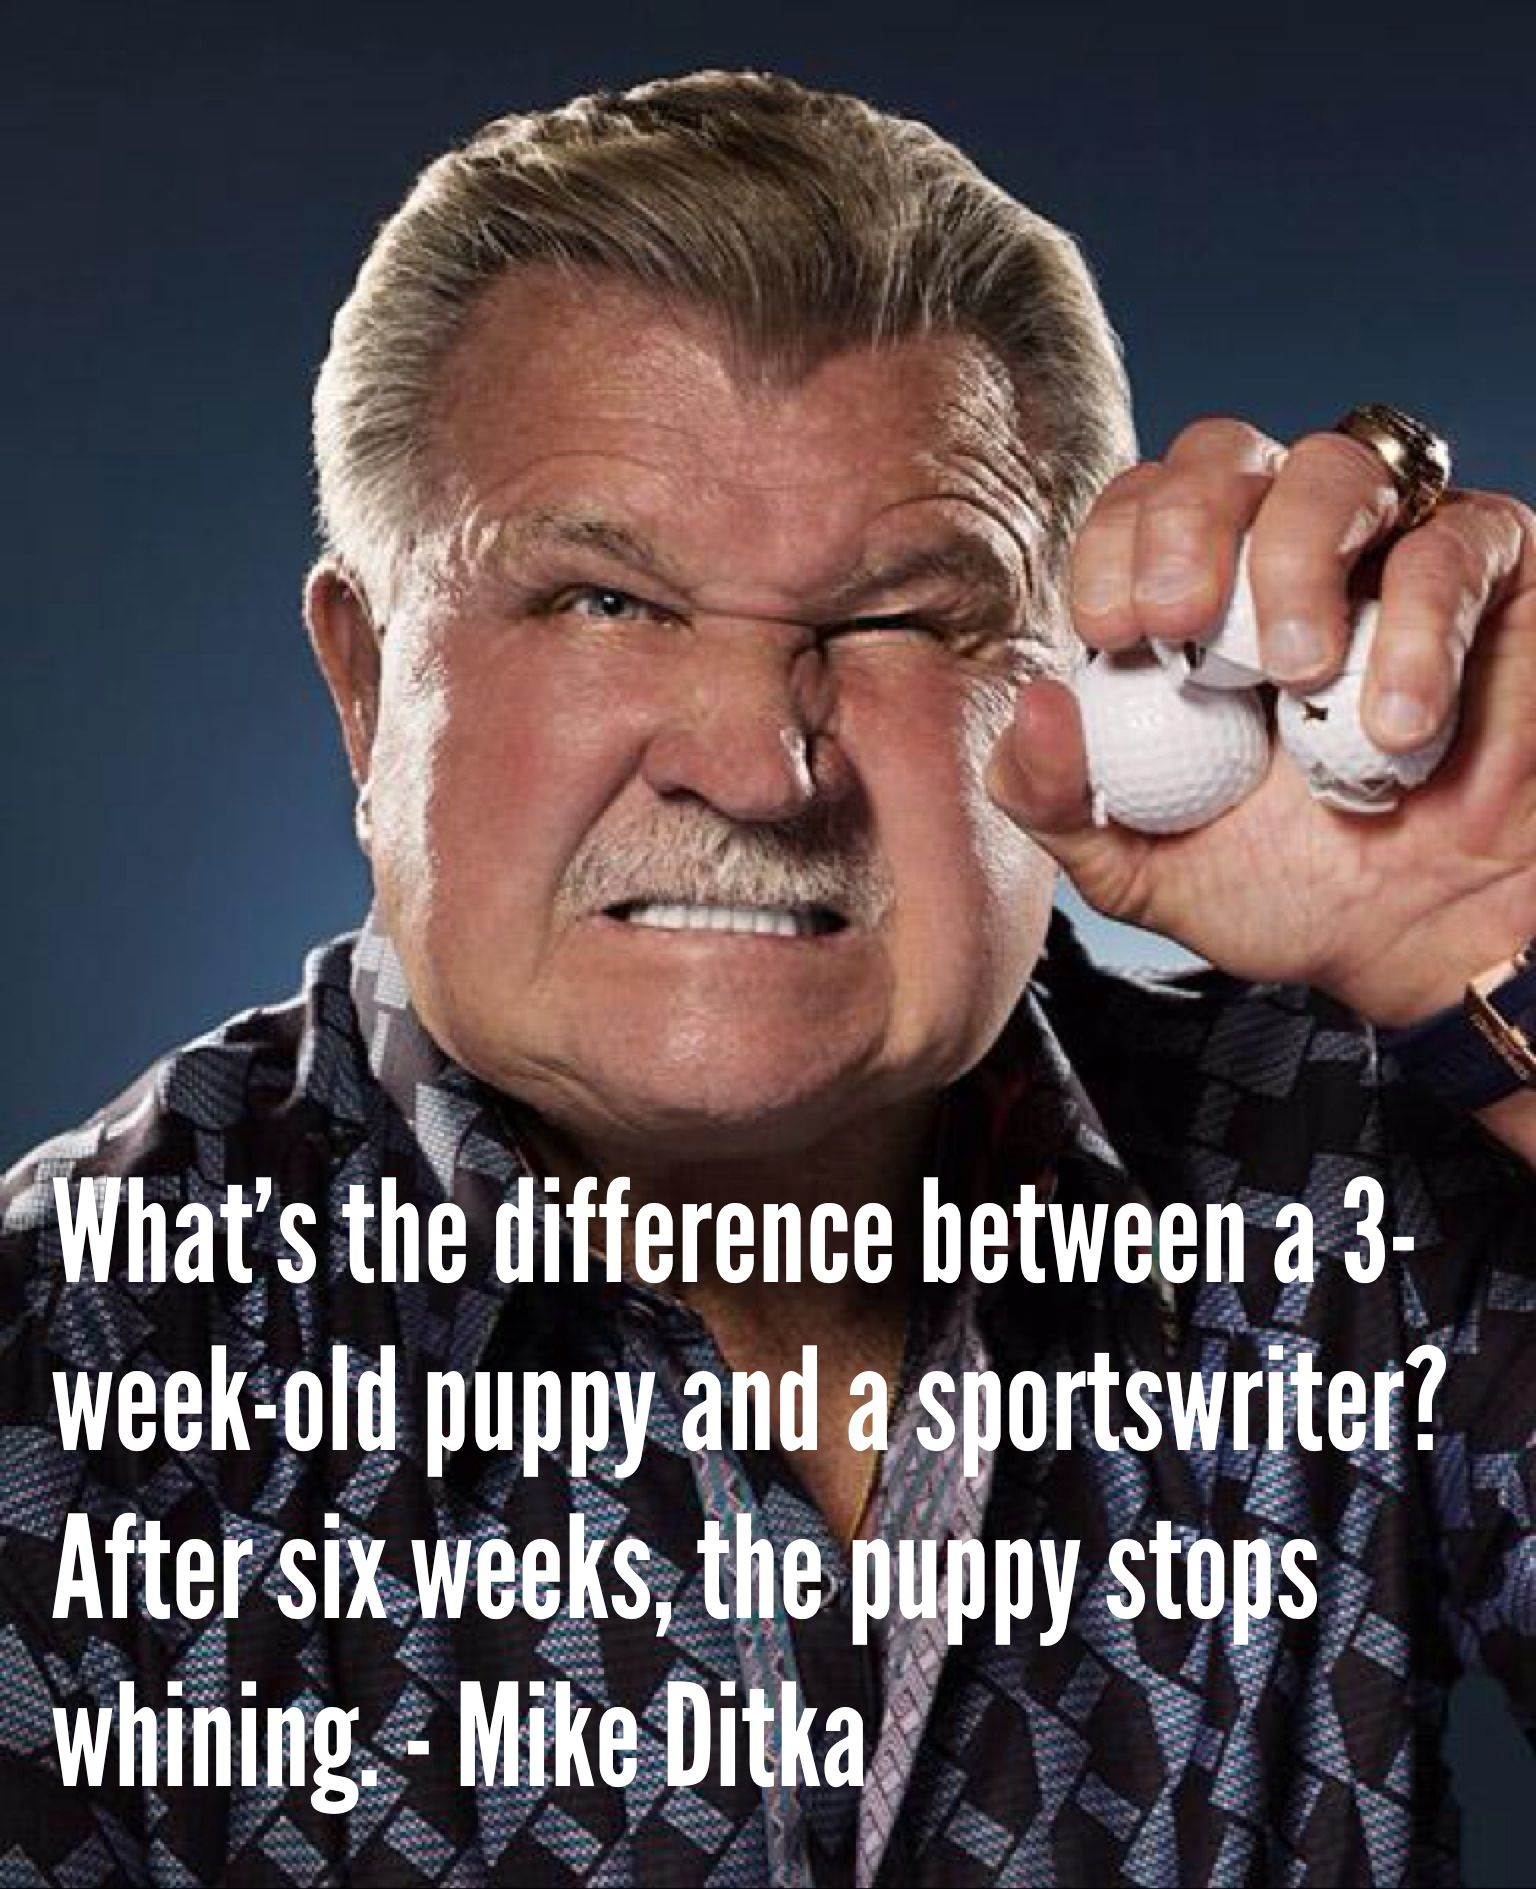 What's the difference between a 3weekold puppy and a